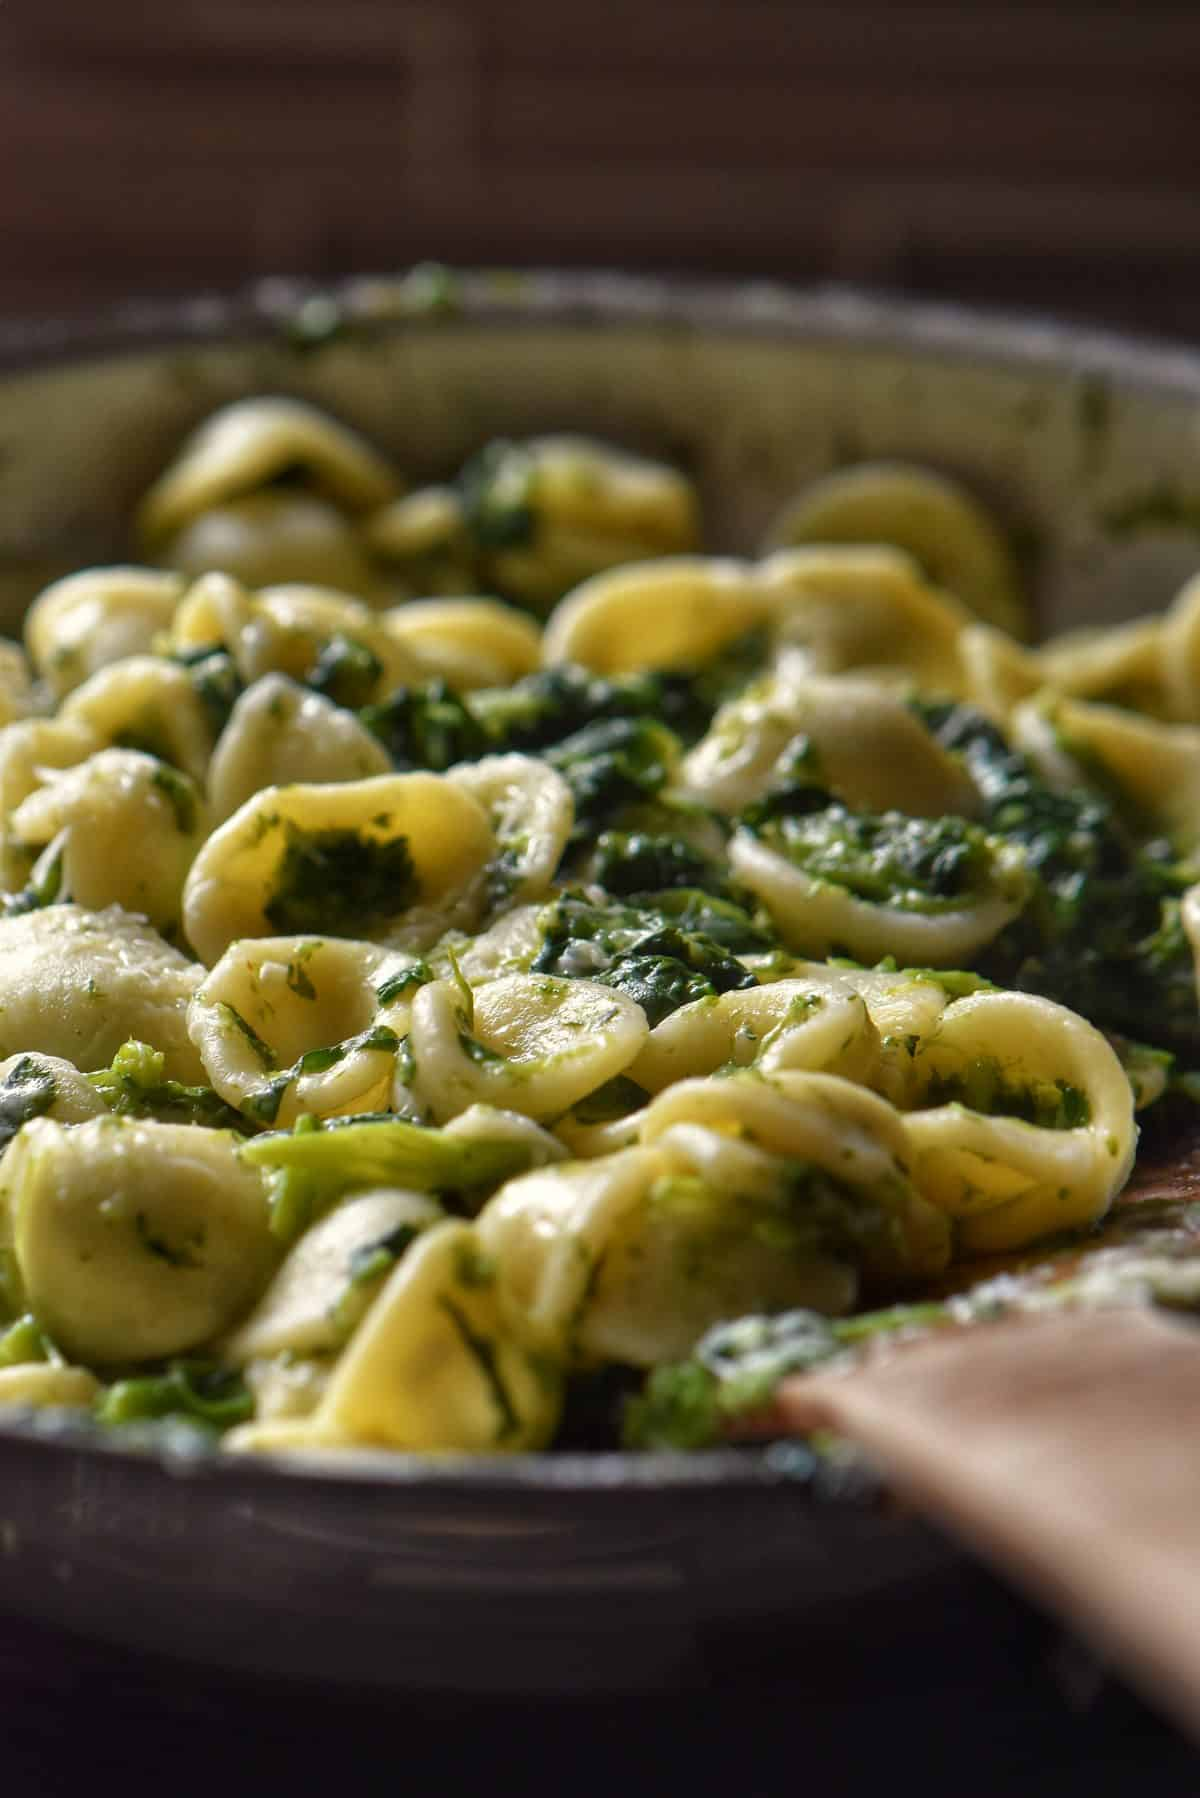 Close up of the pasta with the broccoli rabe in a pan.